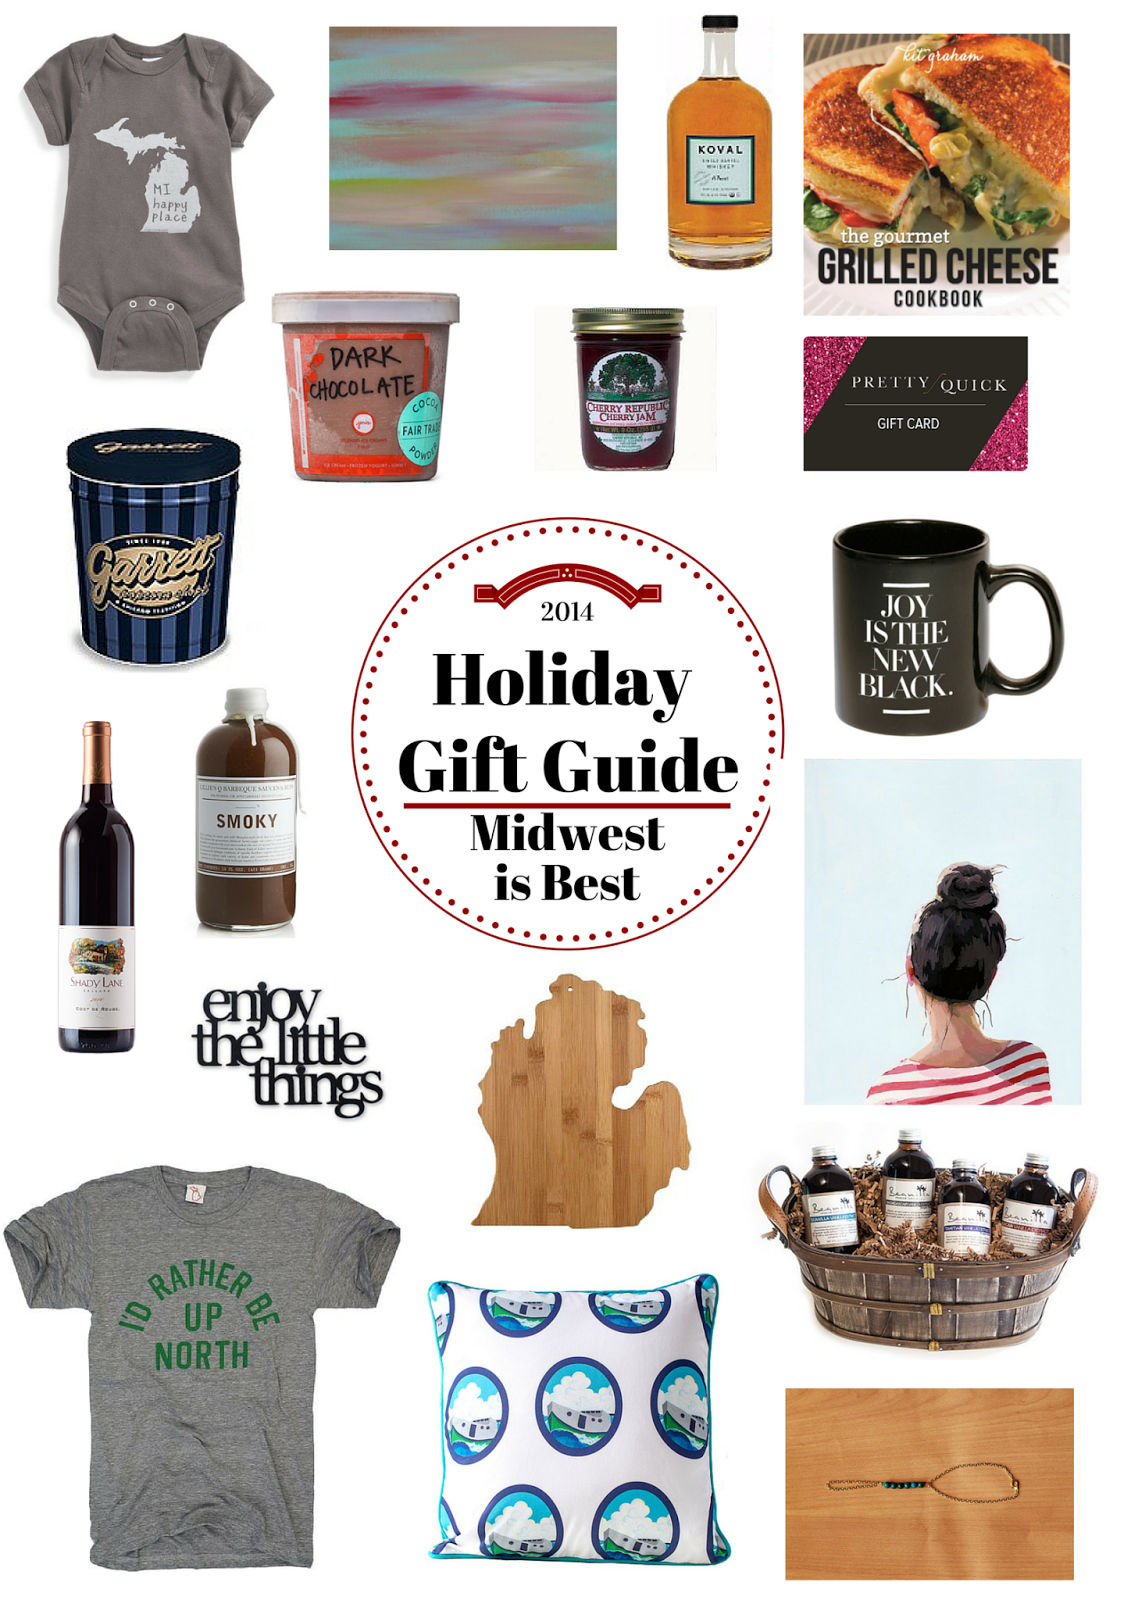 Holiday Gift Guide, Midwest, Gifts